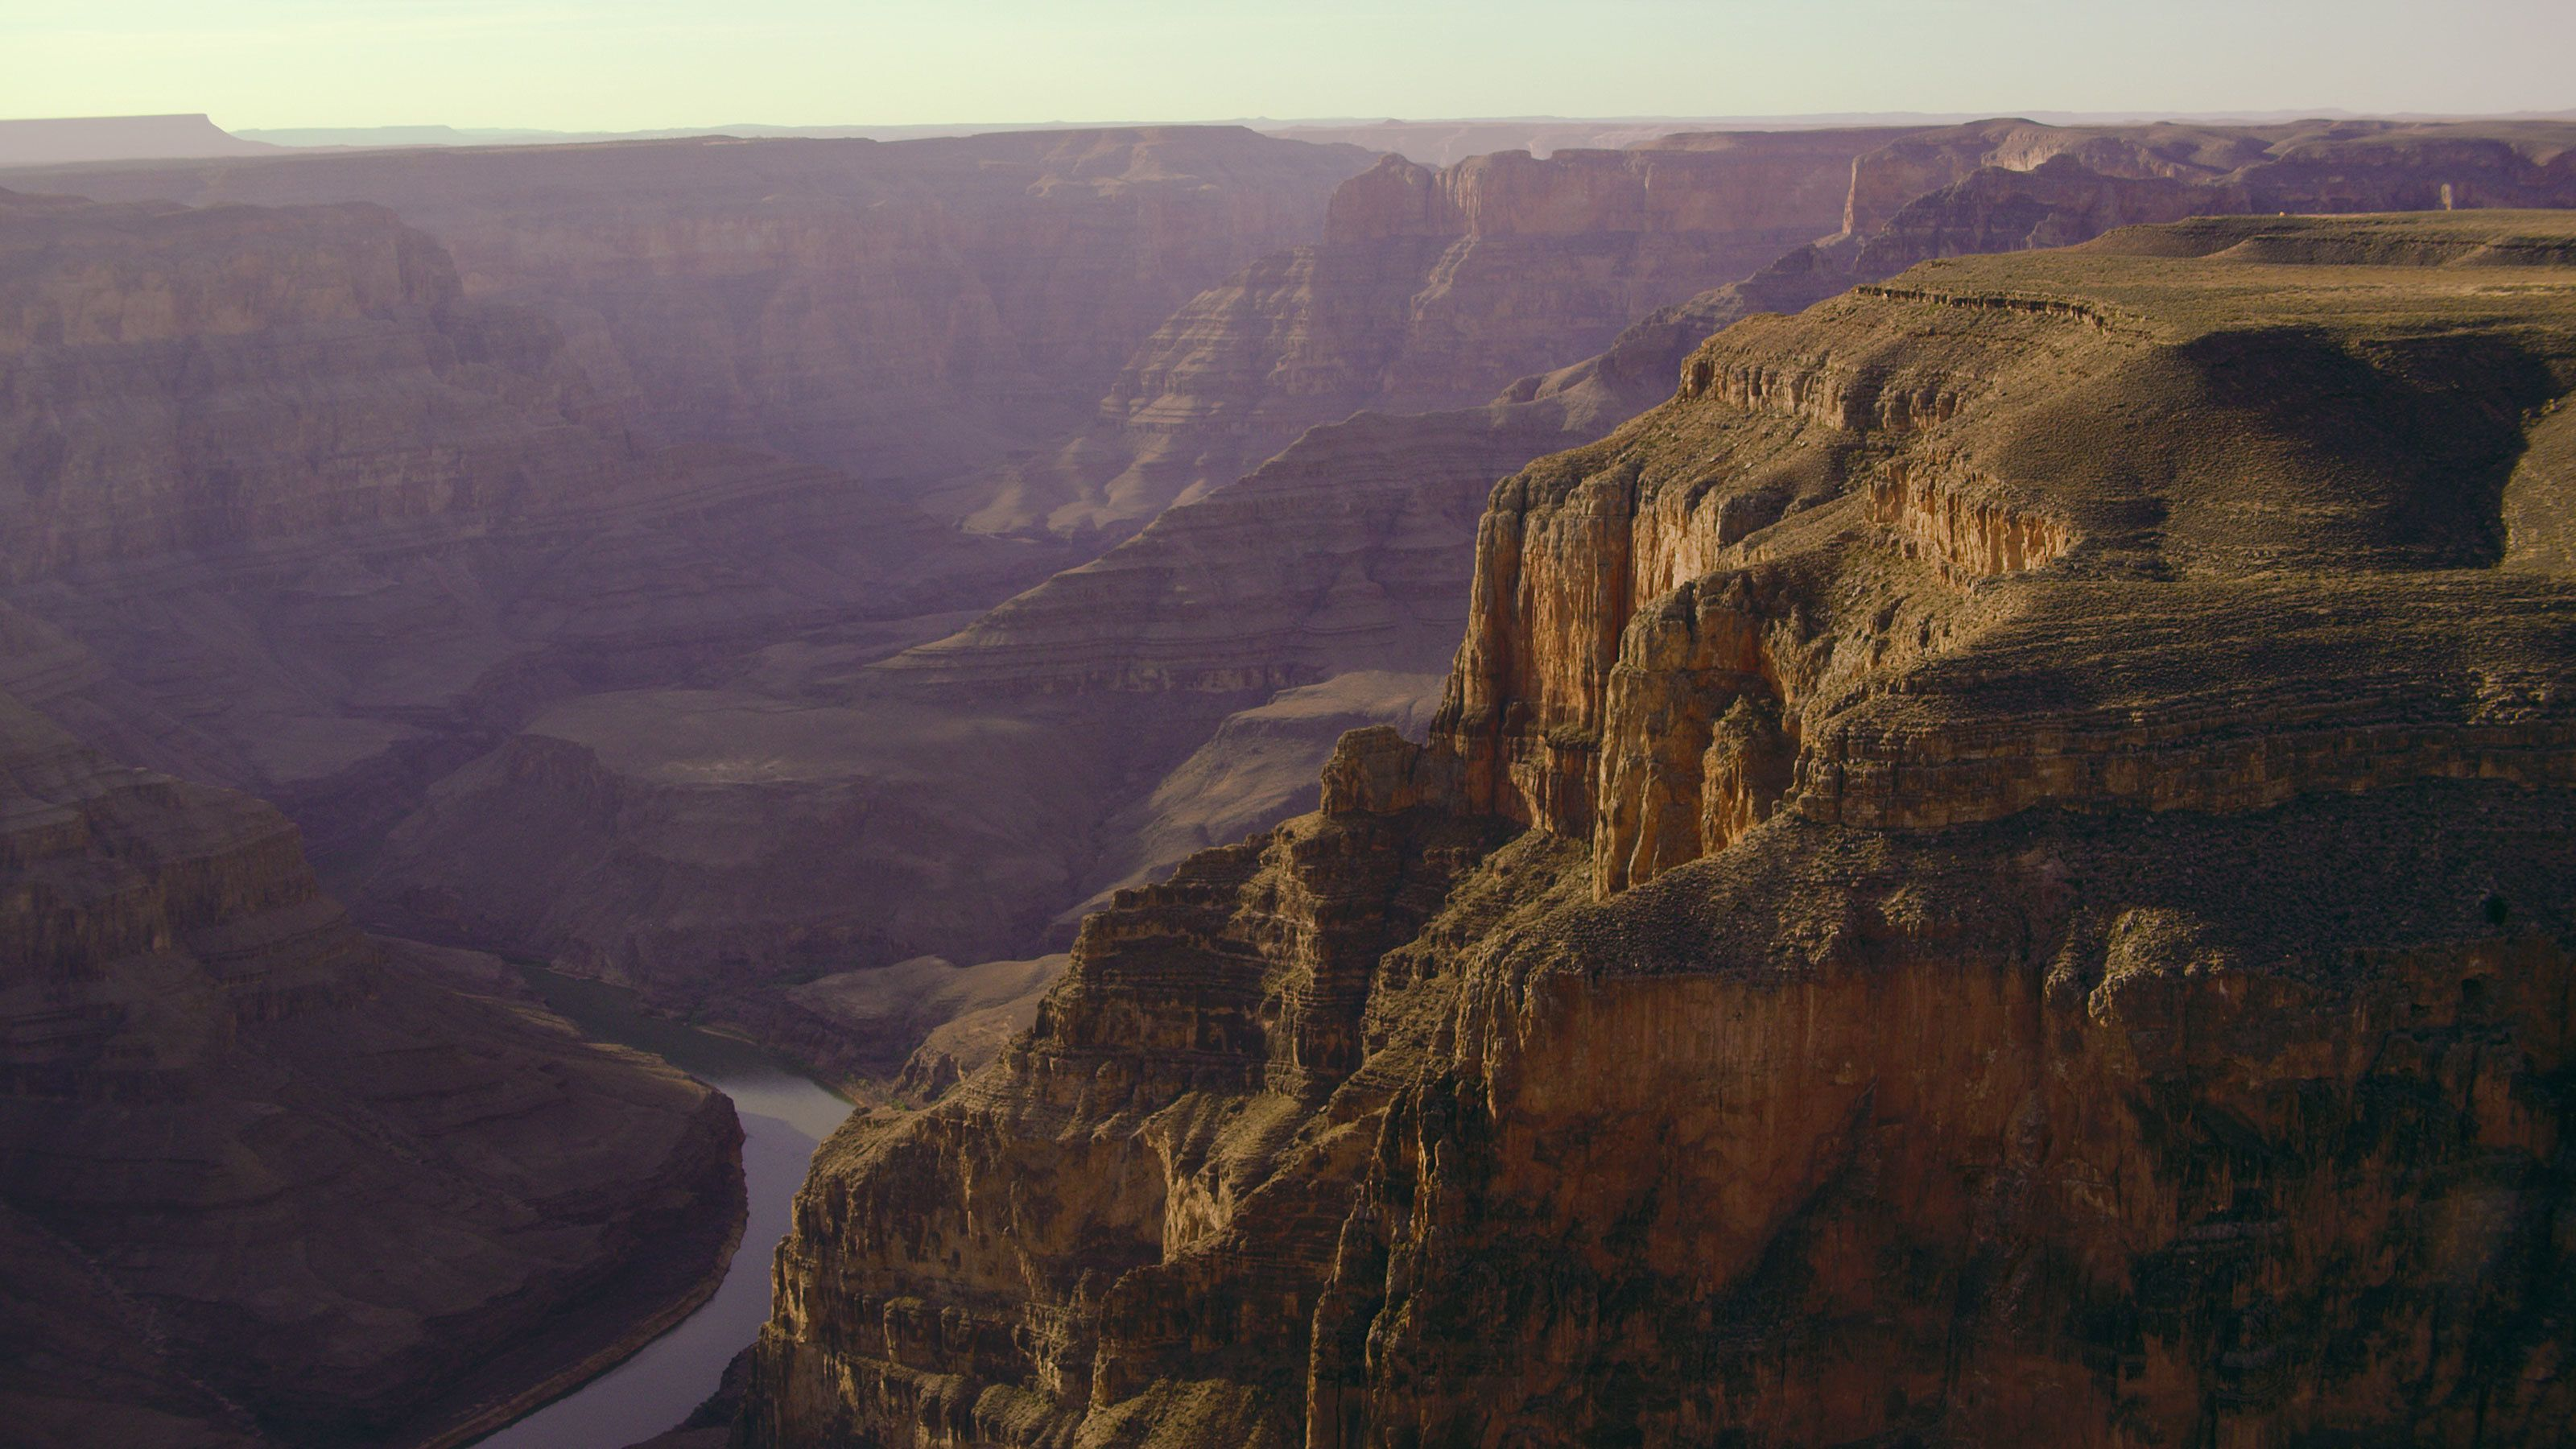 View of the canyon in Arizona